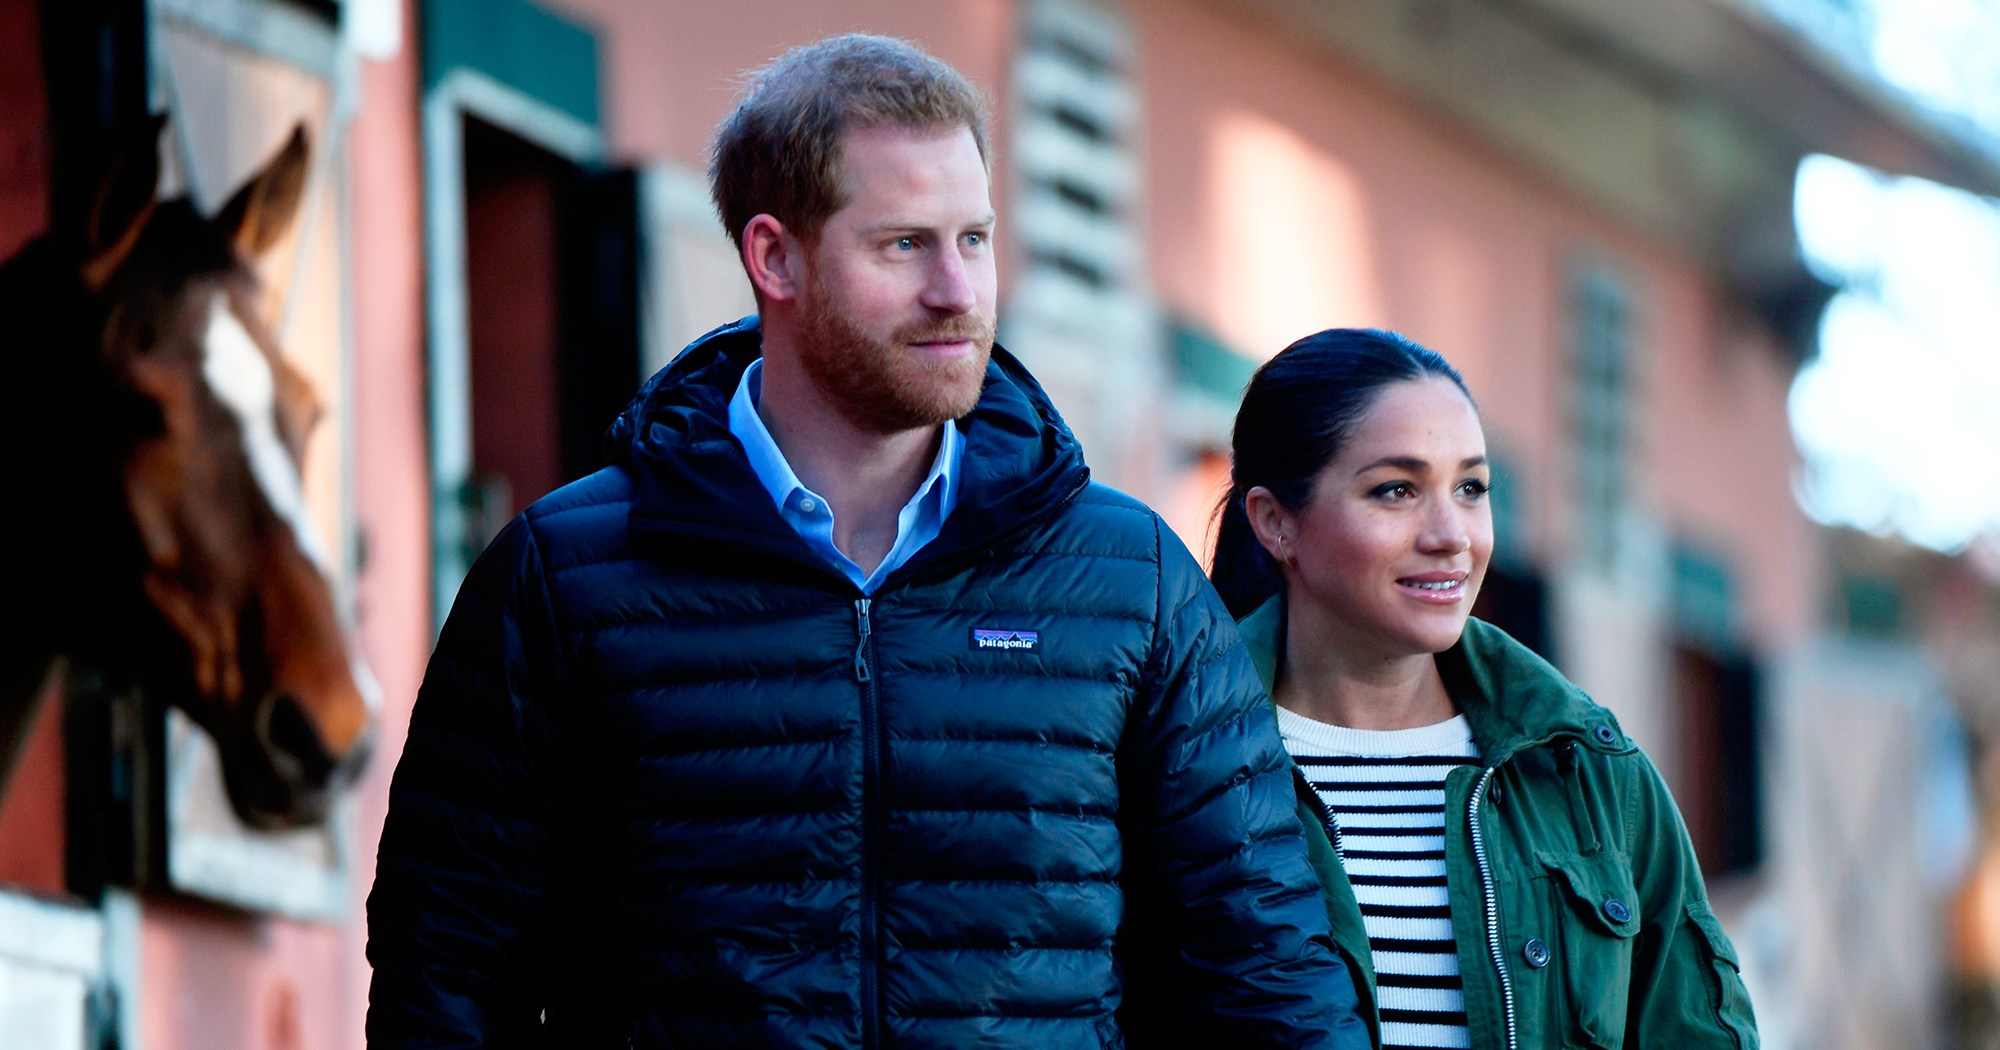 Prince Harry, Duchess Meghan 'Thinking About Names' for Royal Baby